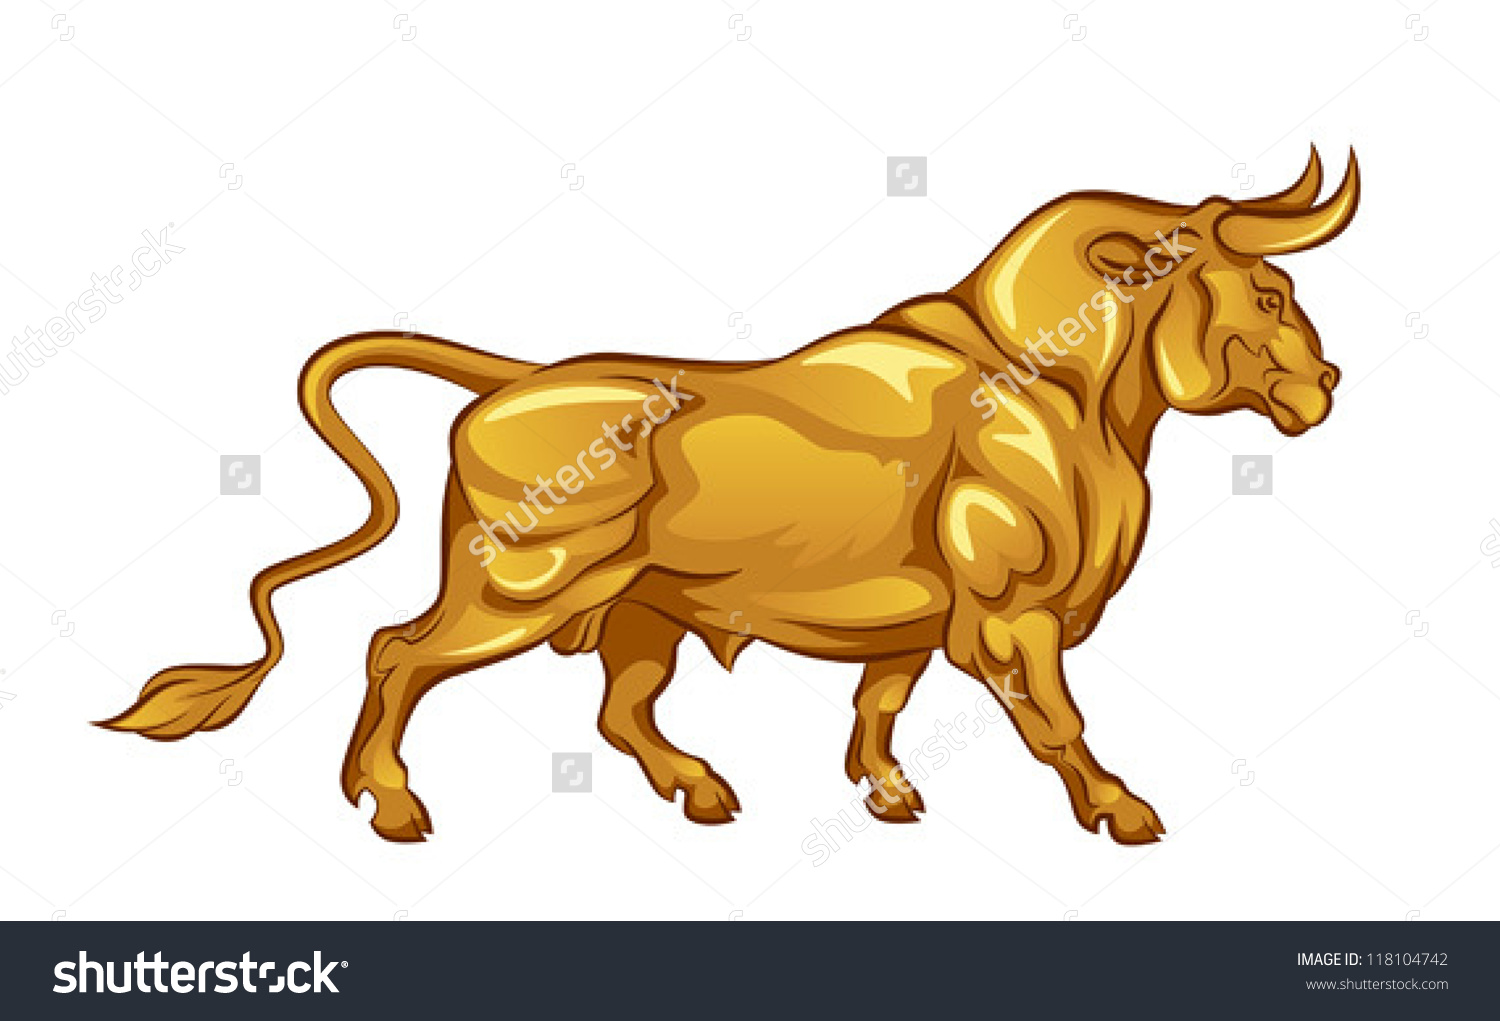 Golden bull clipart 20 free Cliparts | Download images on ...